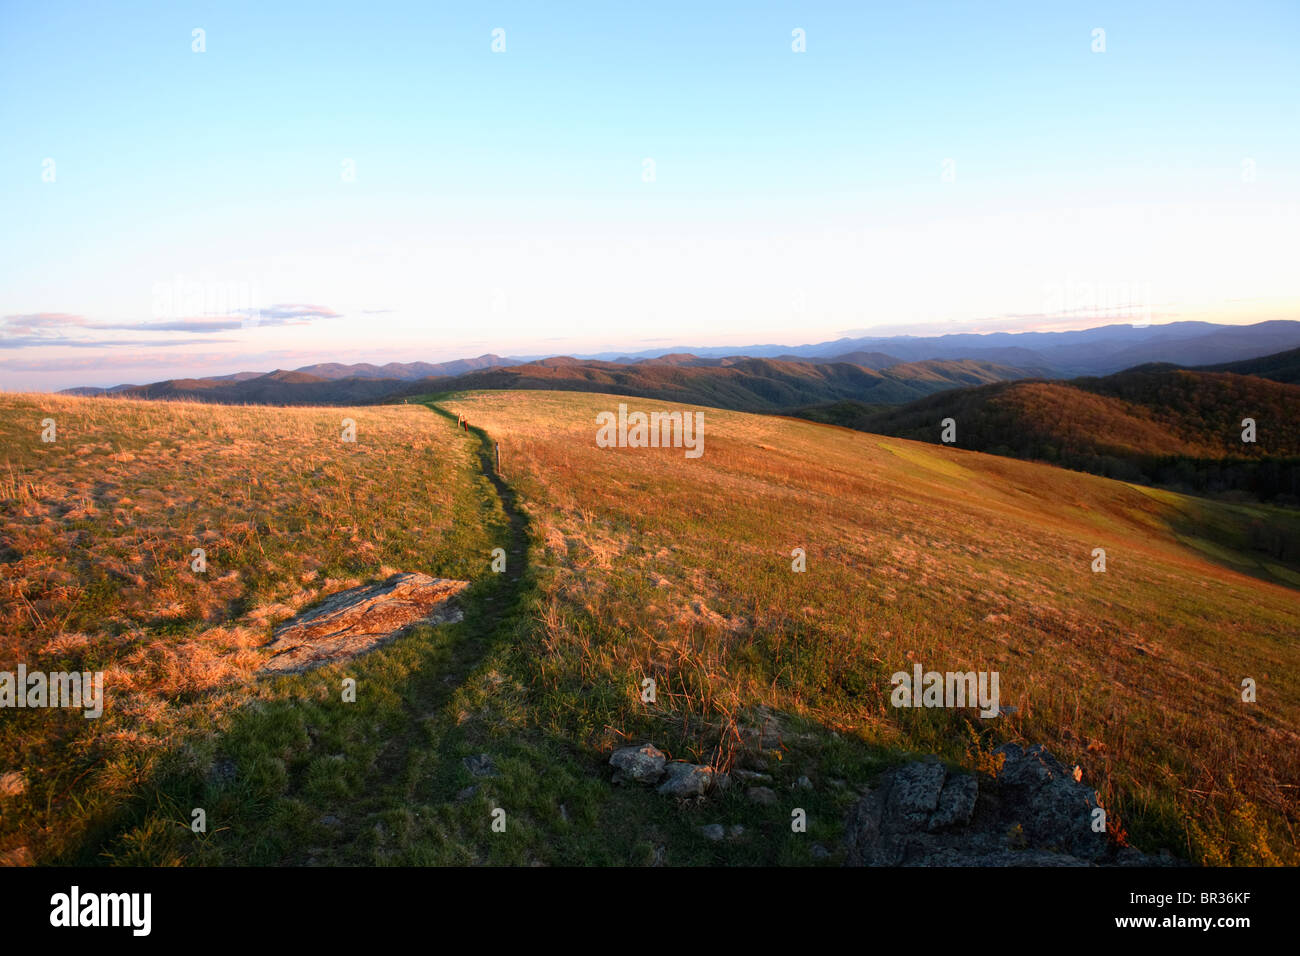 View down the final stretch of the Appalachian Trail to the summit of Max Patch Bald west of Asheville, NC at sunset. - Stock Image